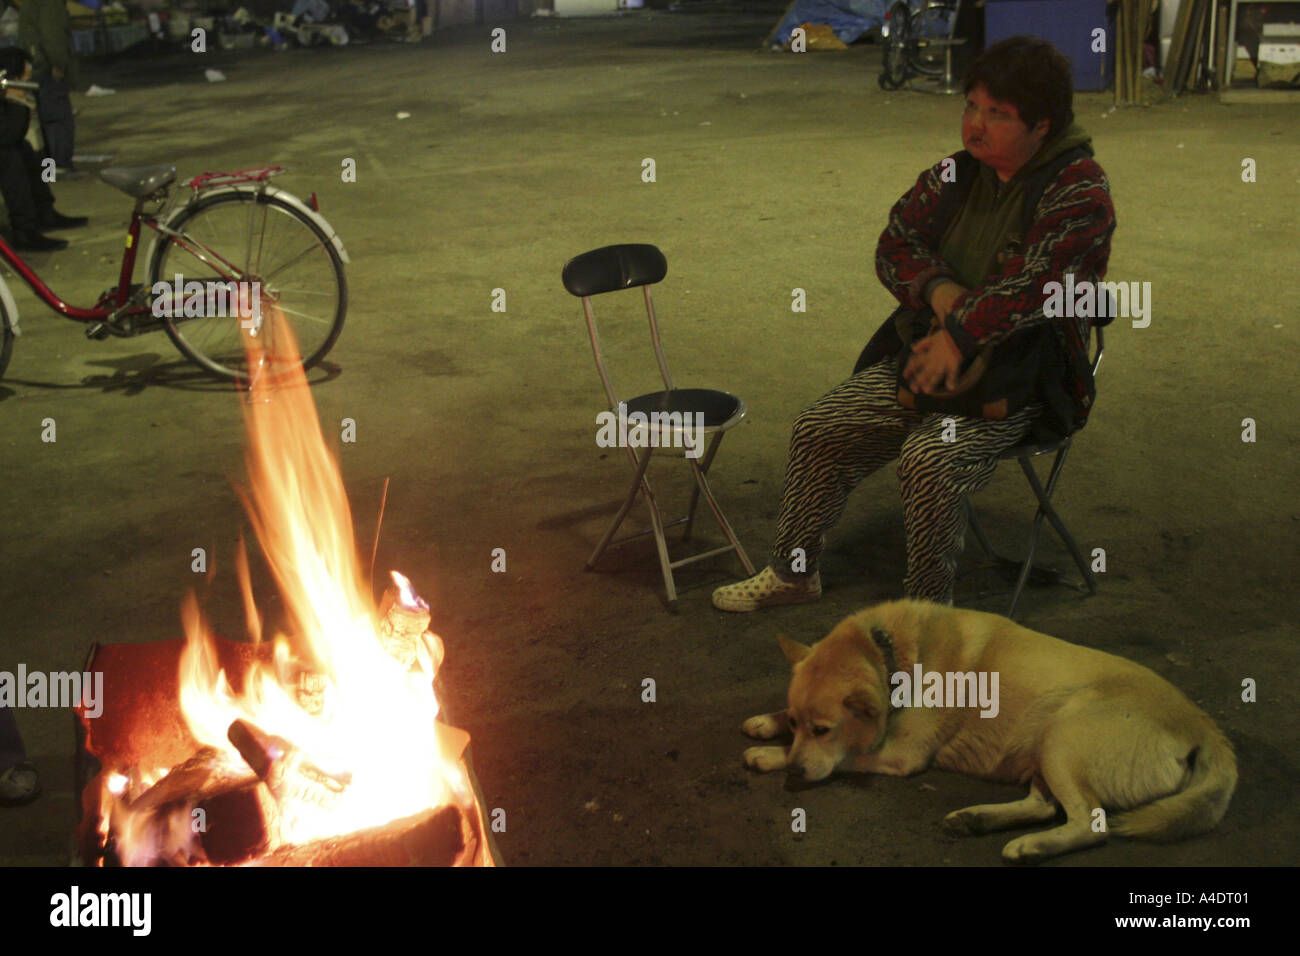 Unemployed homeless woman and dog by fireside, Osaka, Japan. - Stock Image